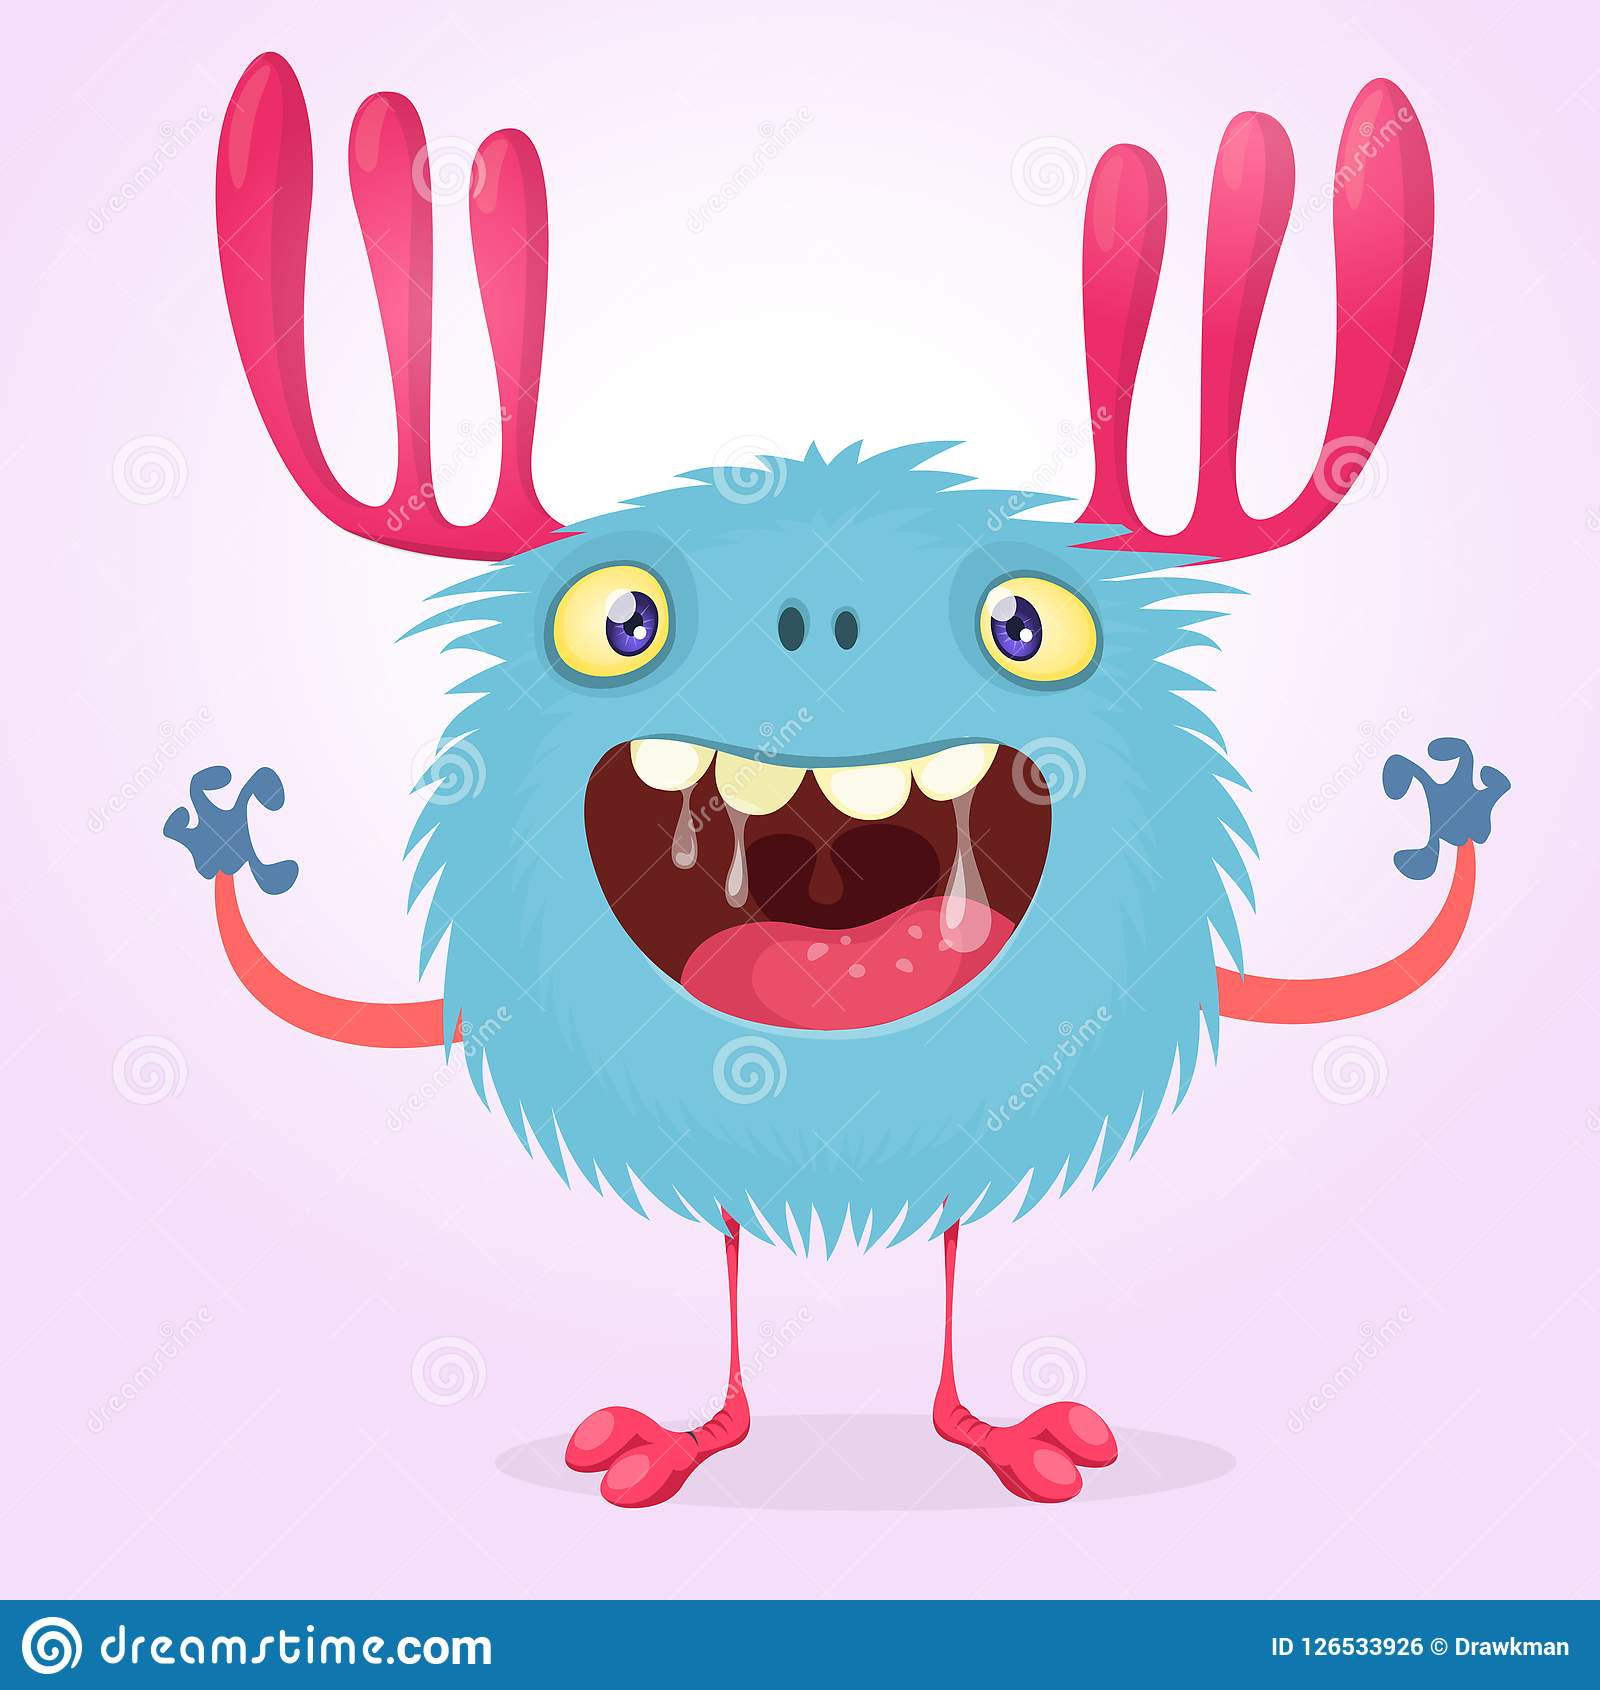 Cute Cartoon Monster Character With Big Horns Stock Vector.